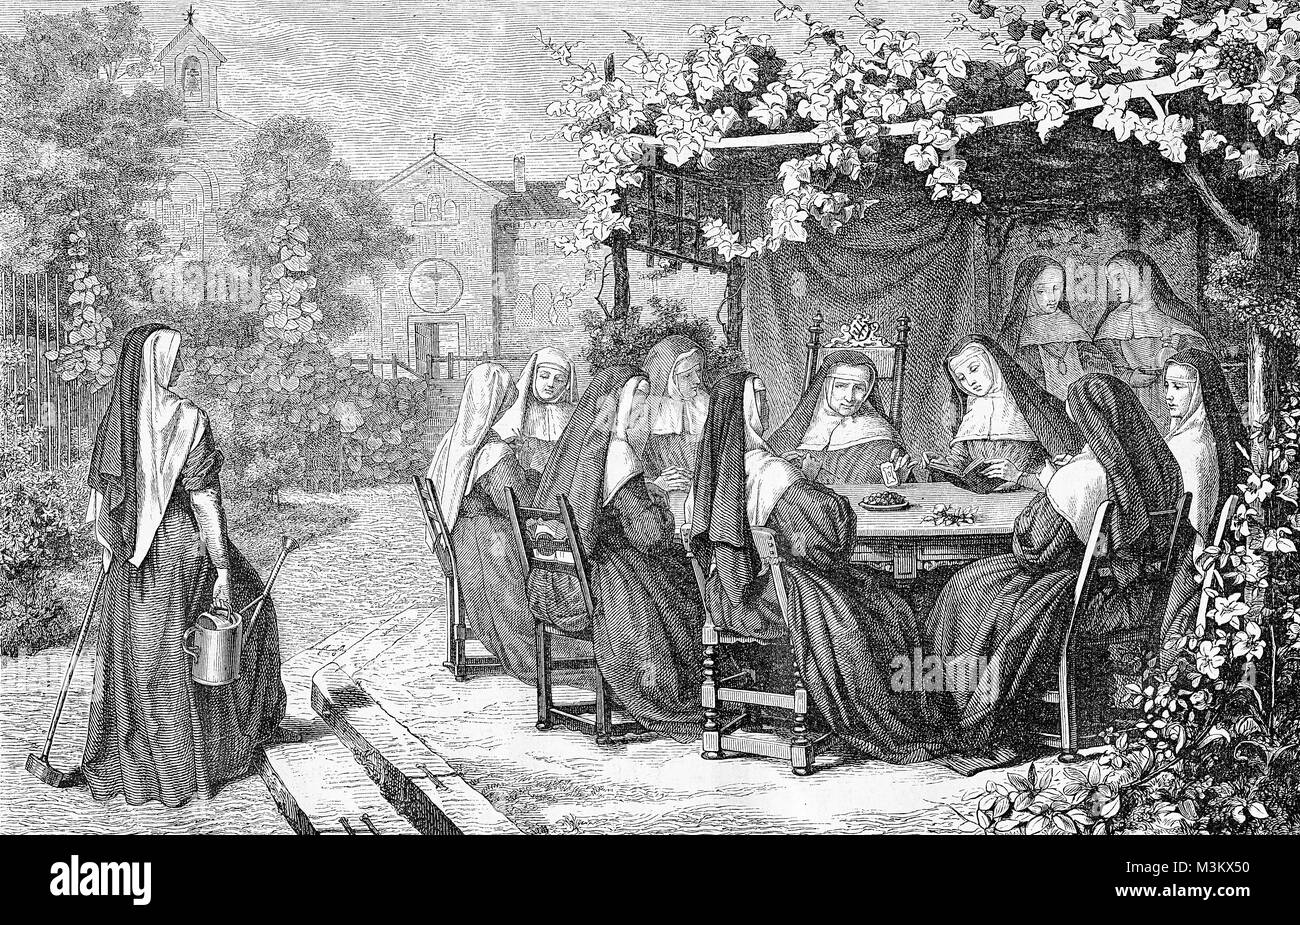 Nuns enjoy the warm weather sitting outside in cloister garden, vintage engraving - Stock Image